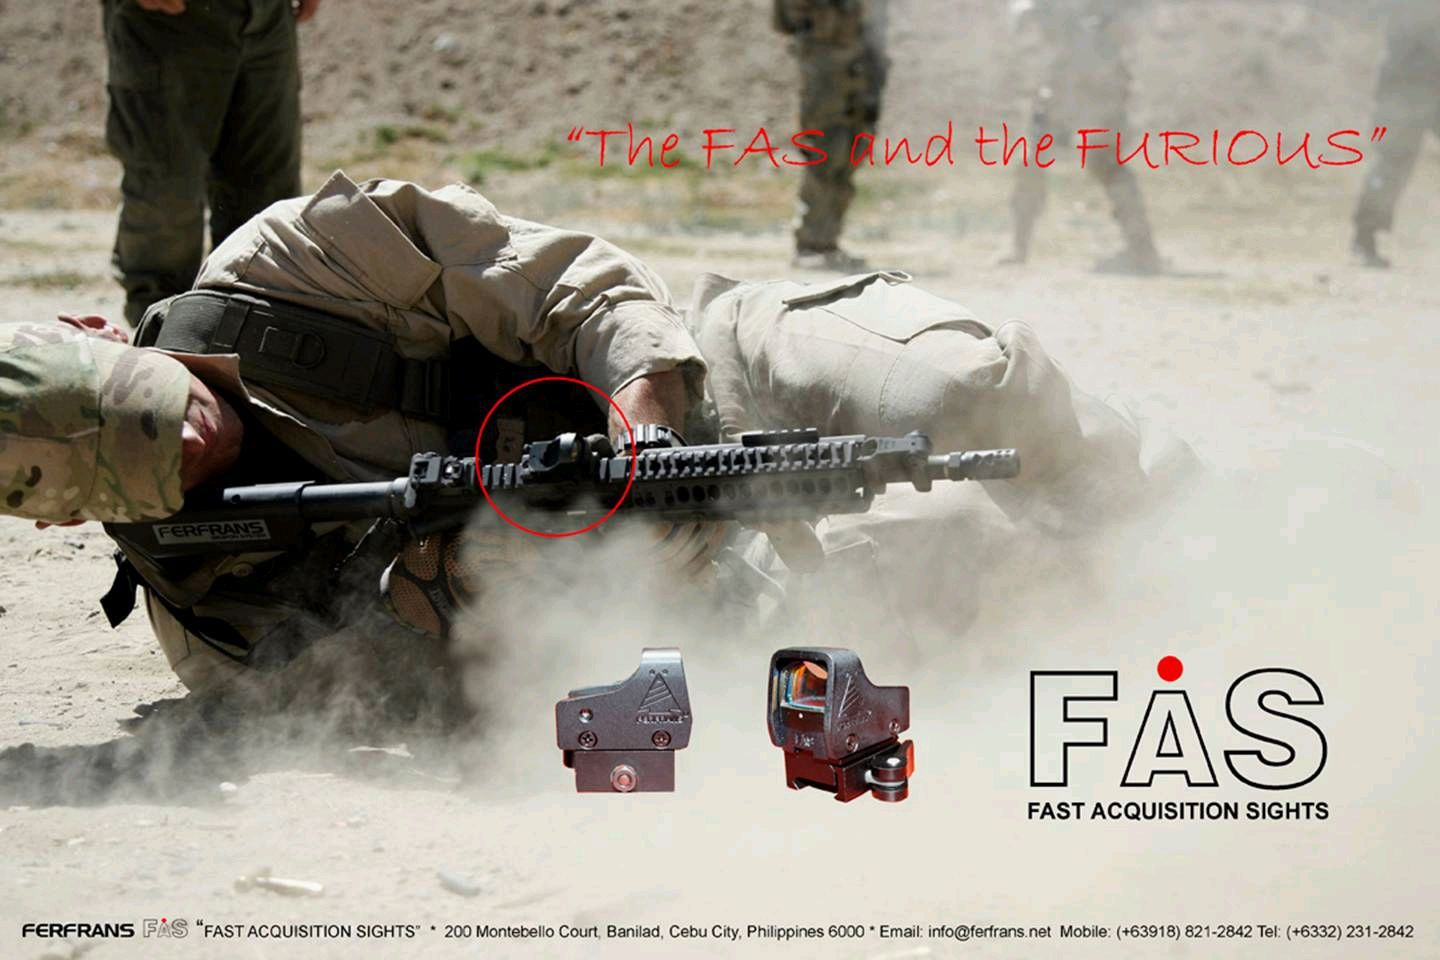 FERFRANS FAS CombatSight 3 <!  :en  >FERFRANS FAS (Fast Acquisition Sight) HUD Style Red Dot Sight/Combat Optic for Urban Warfare Applications<!  :  >